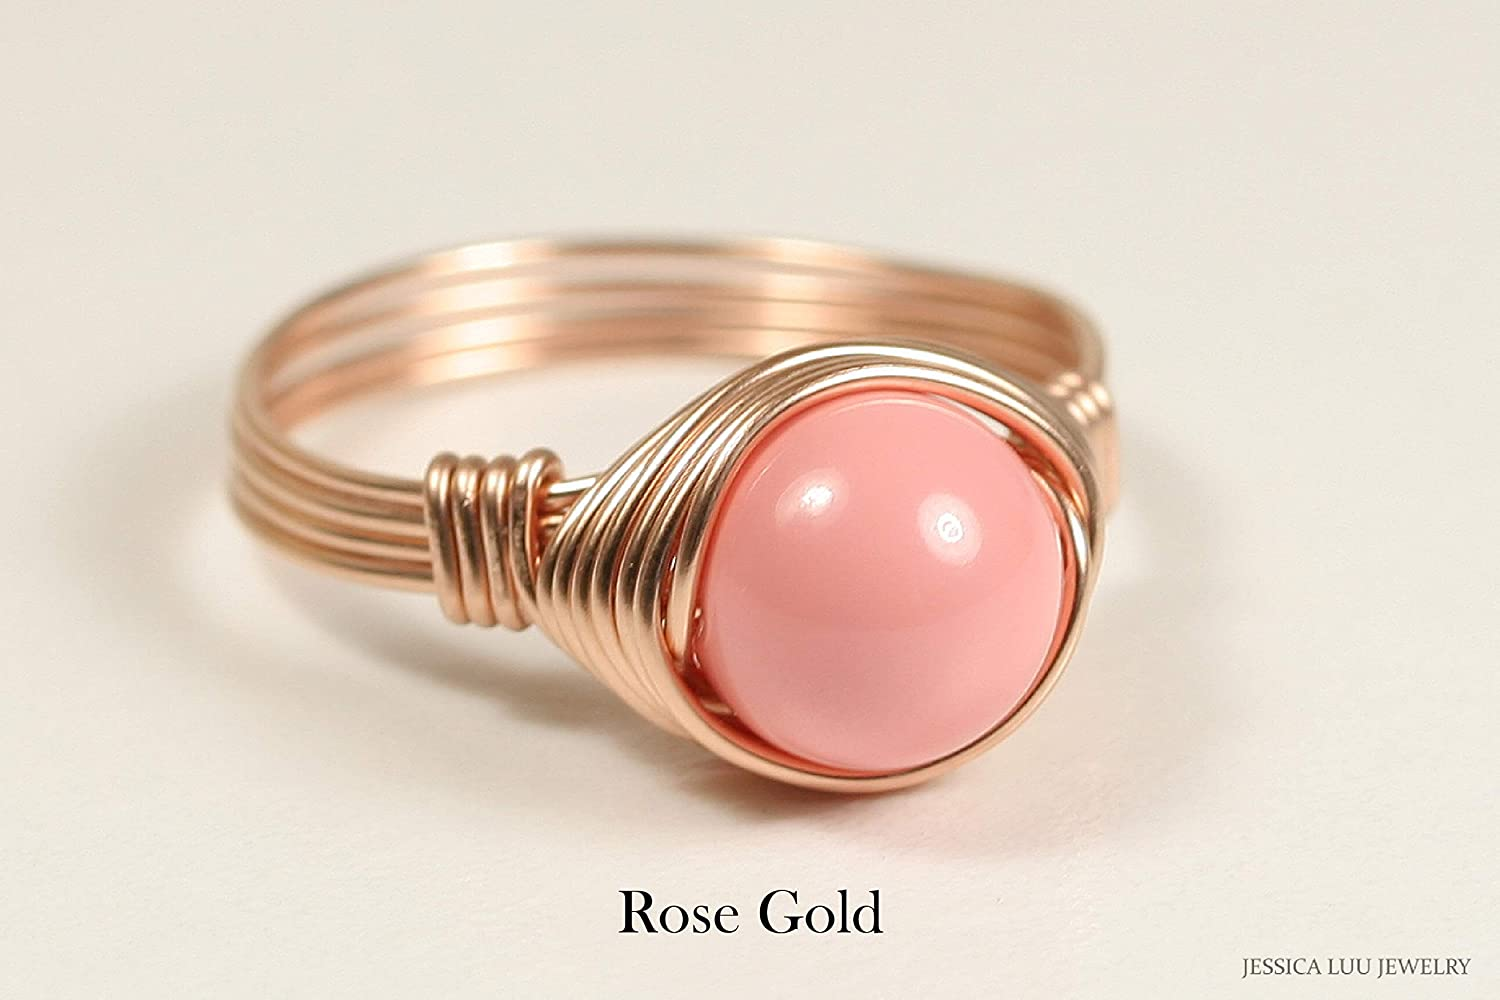 coral ring for women momo coral jewelry angel skin coral ring Coral Ring pink coral jewelry pink coral ring silver tourmaline ring